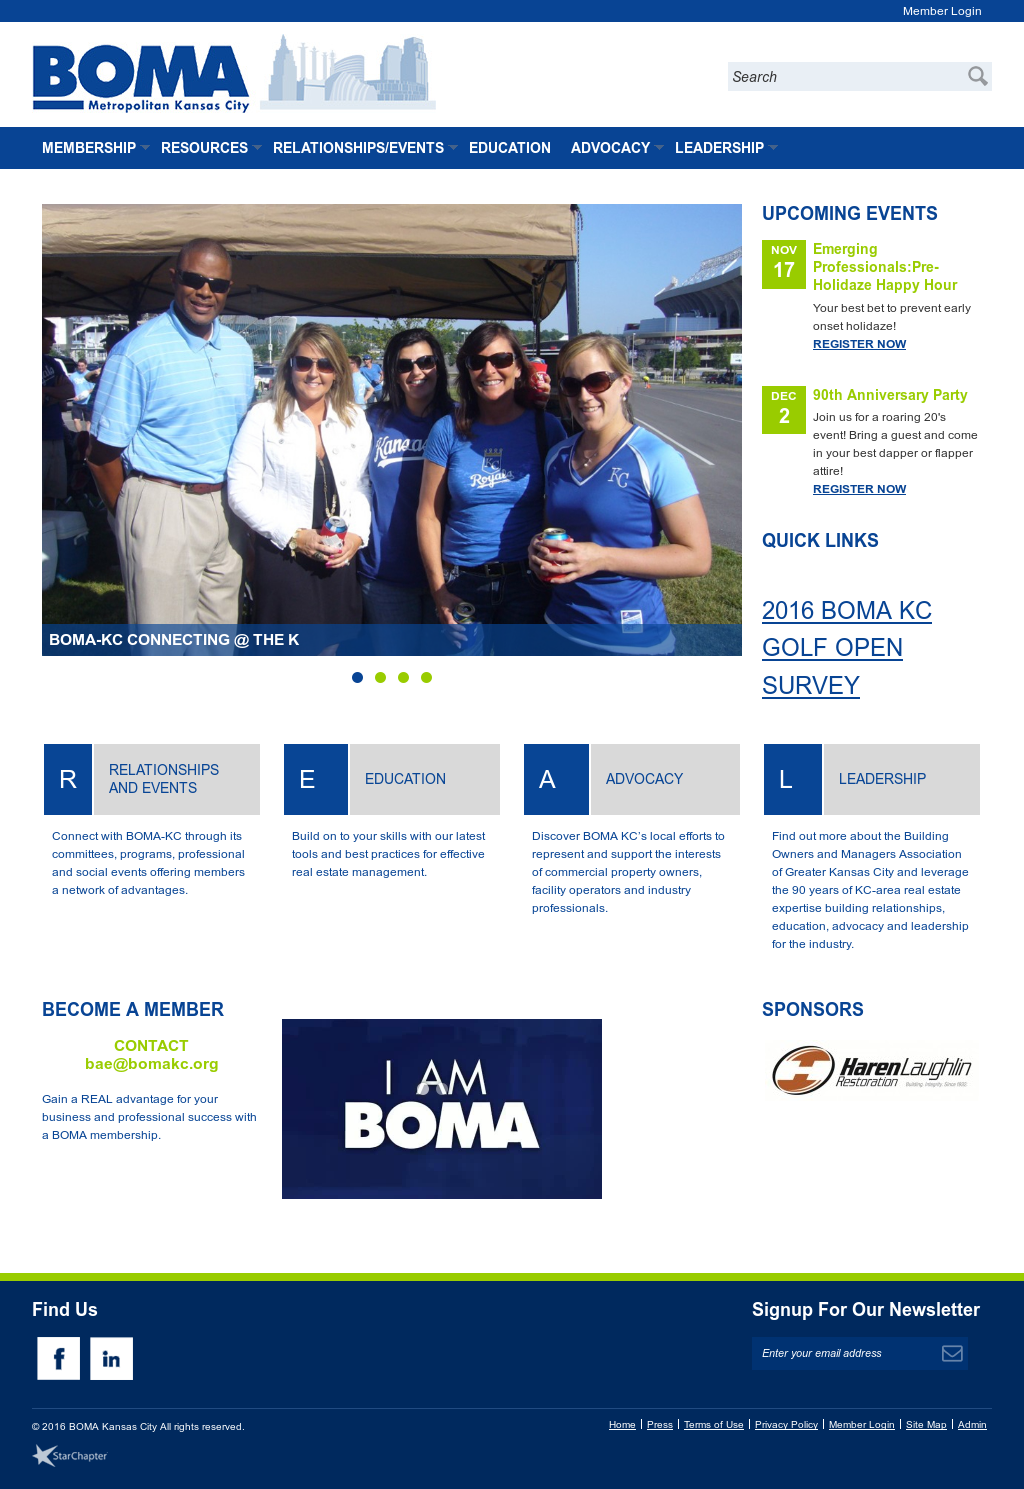 Boma Kansas City Competitors, Revenue and Employees - Owler Company